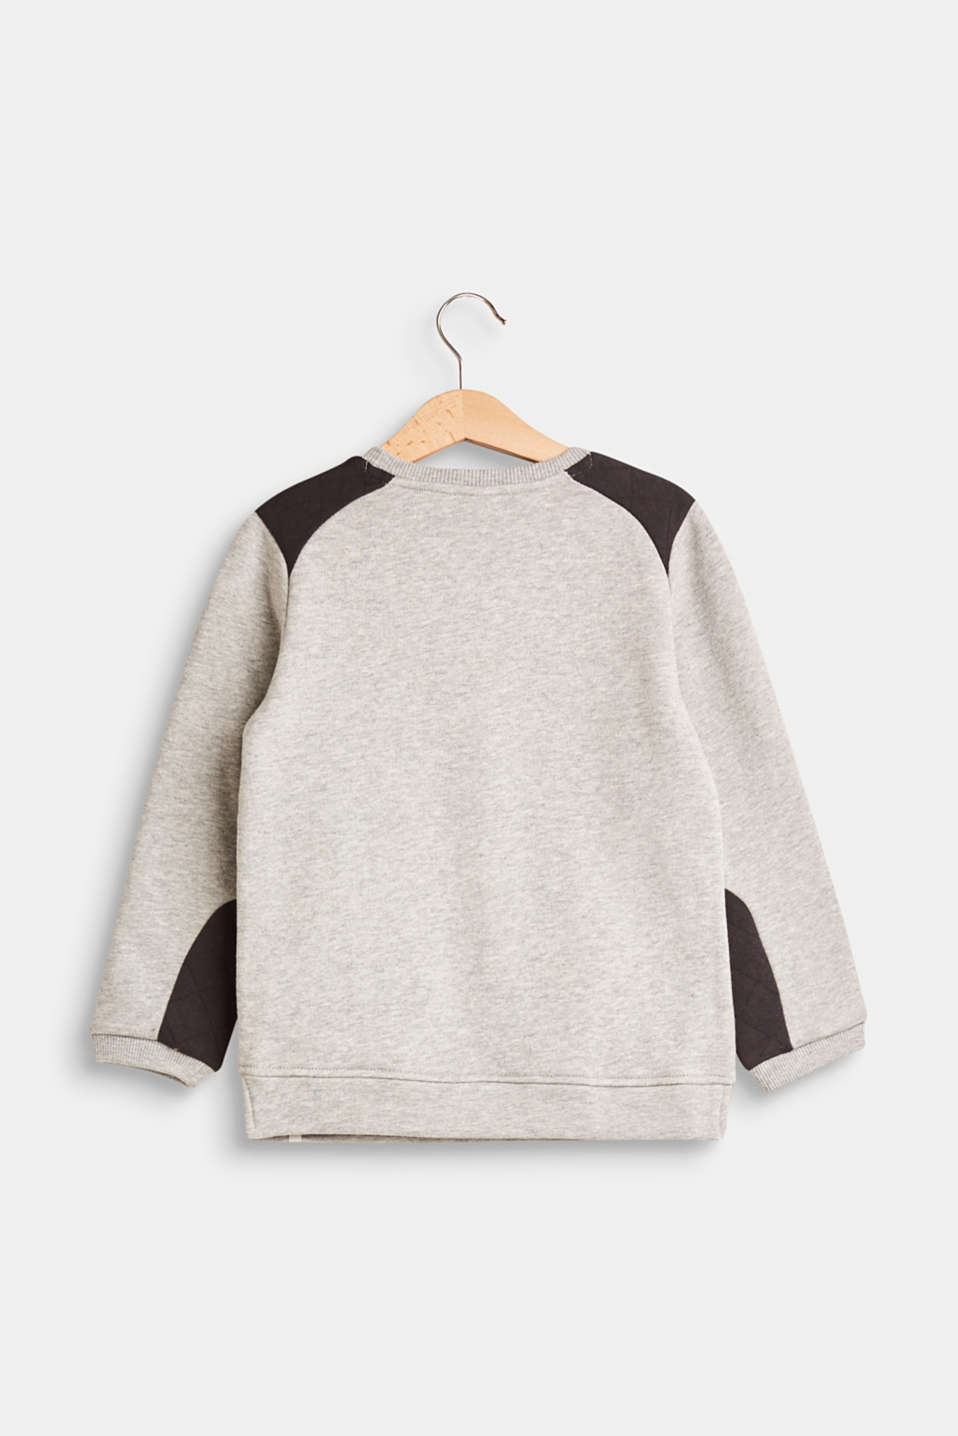 Sweatshirt featuring two kinds of jersey, 100% cotton